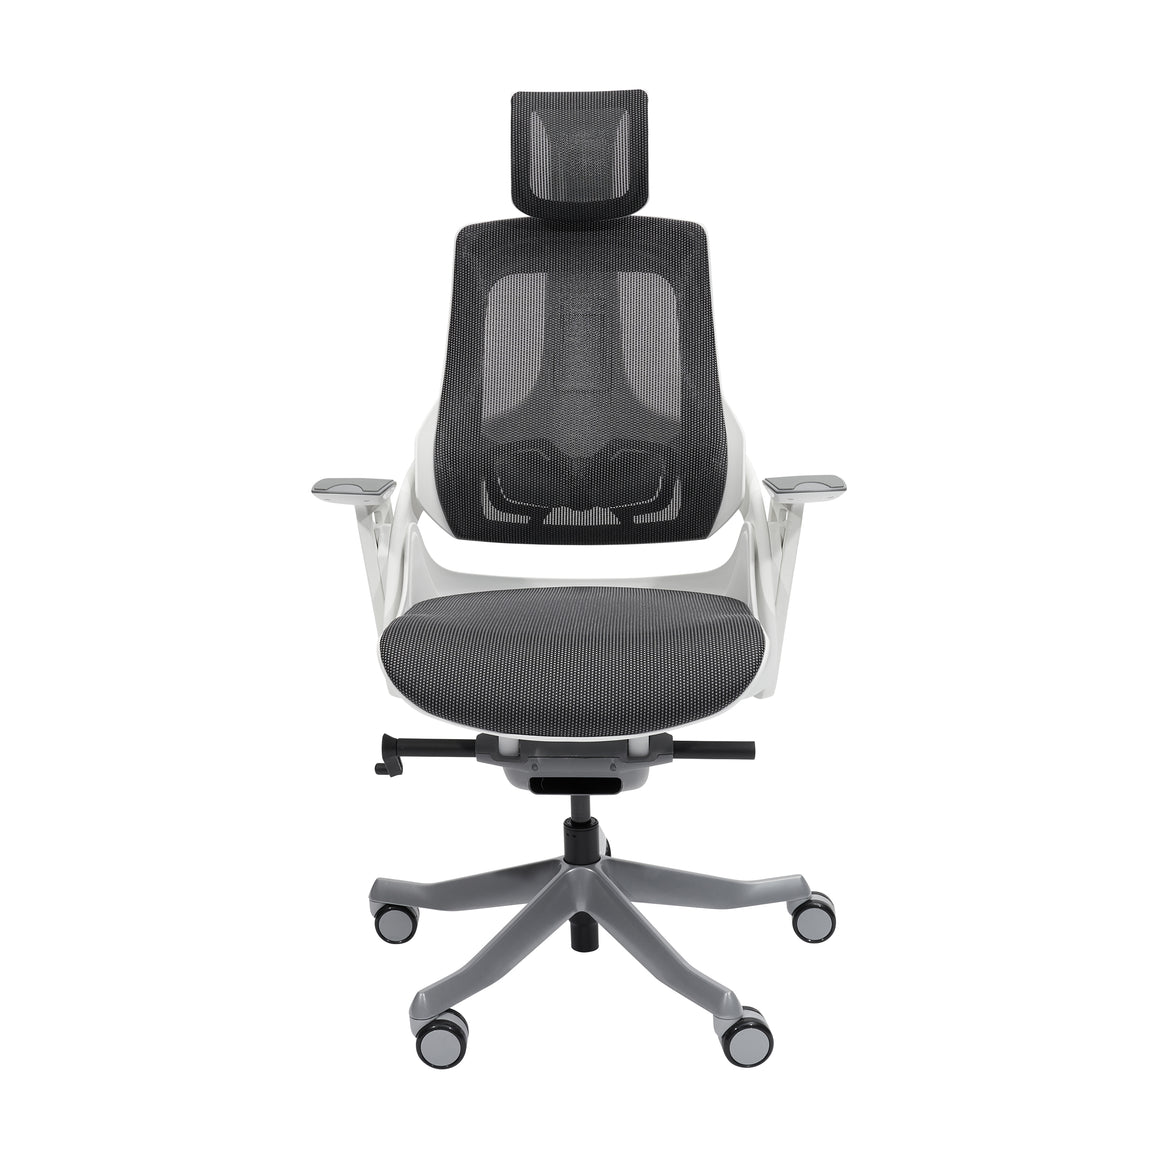 LUX Ergonomic Executive Chair